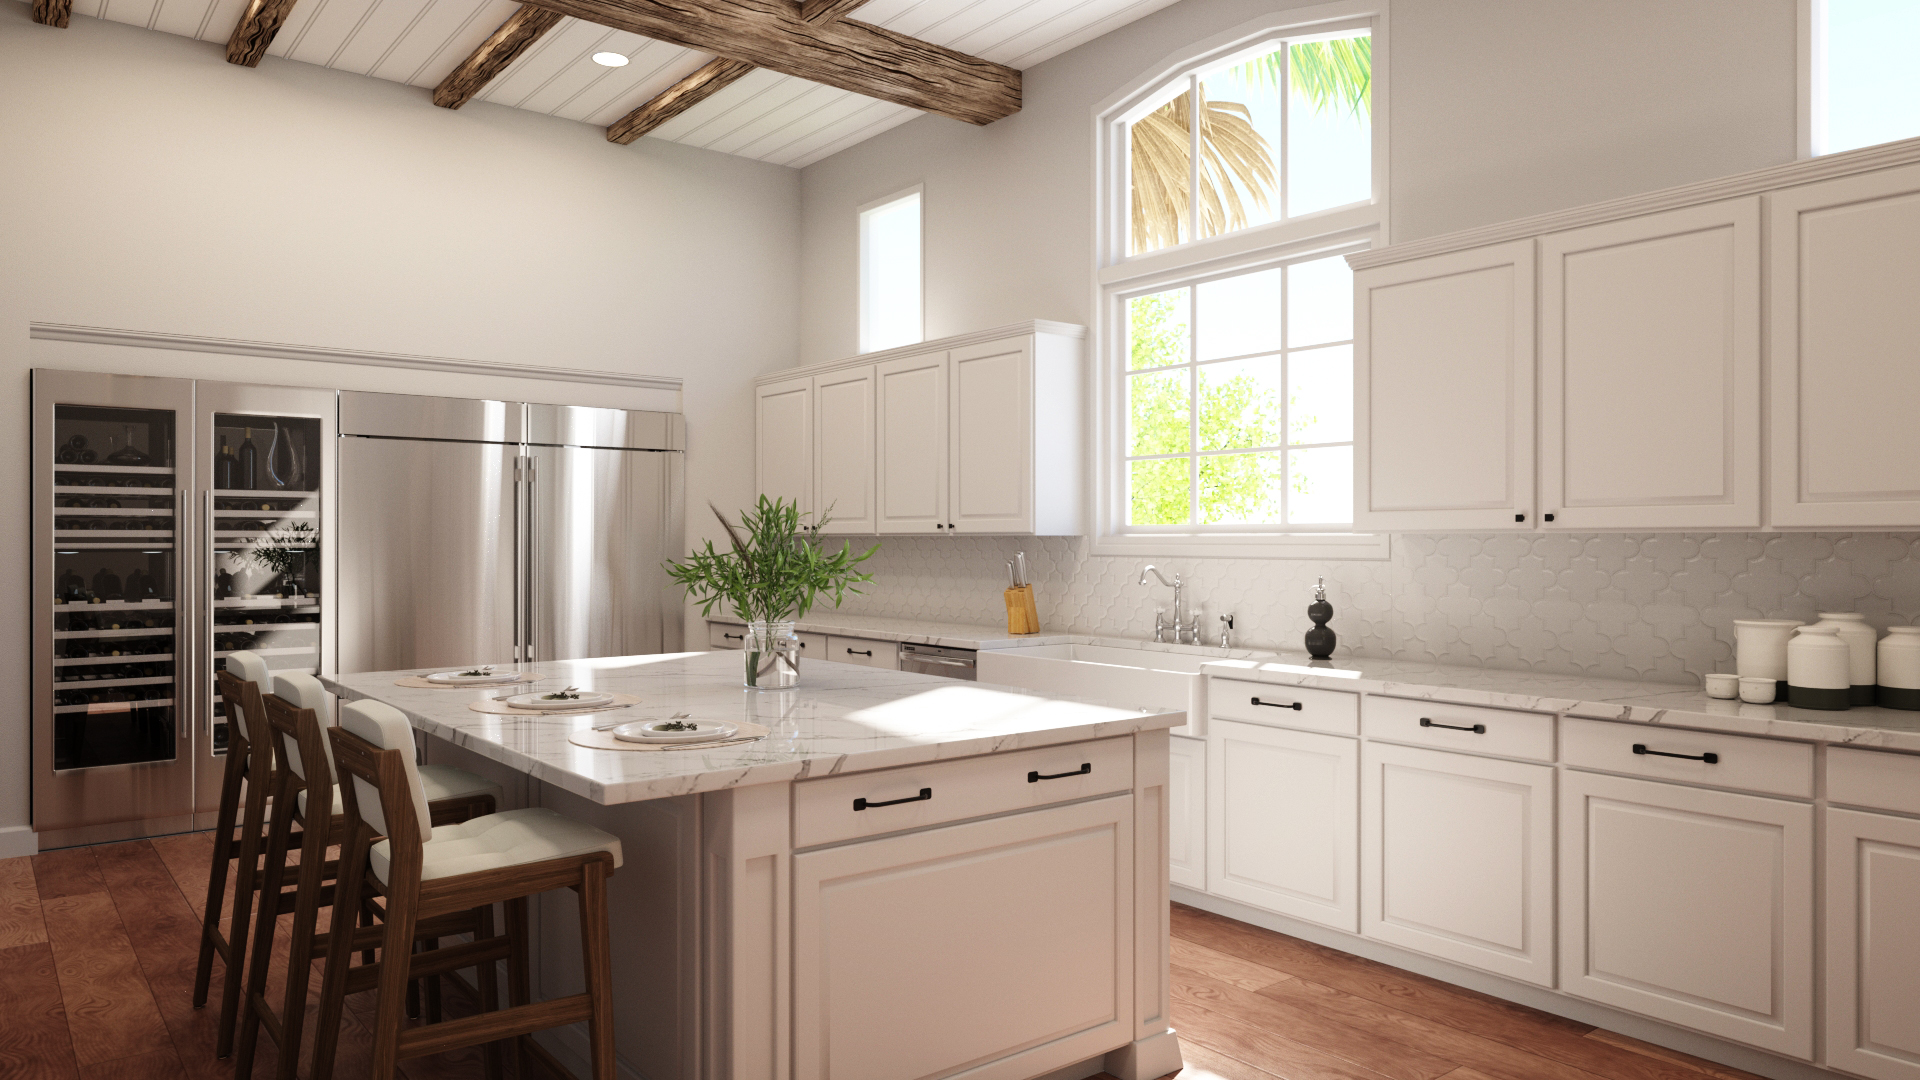 3D rendering of a new kitchen design